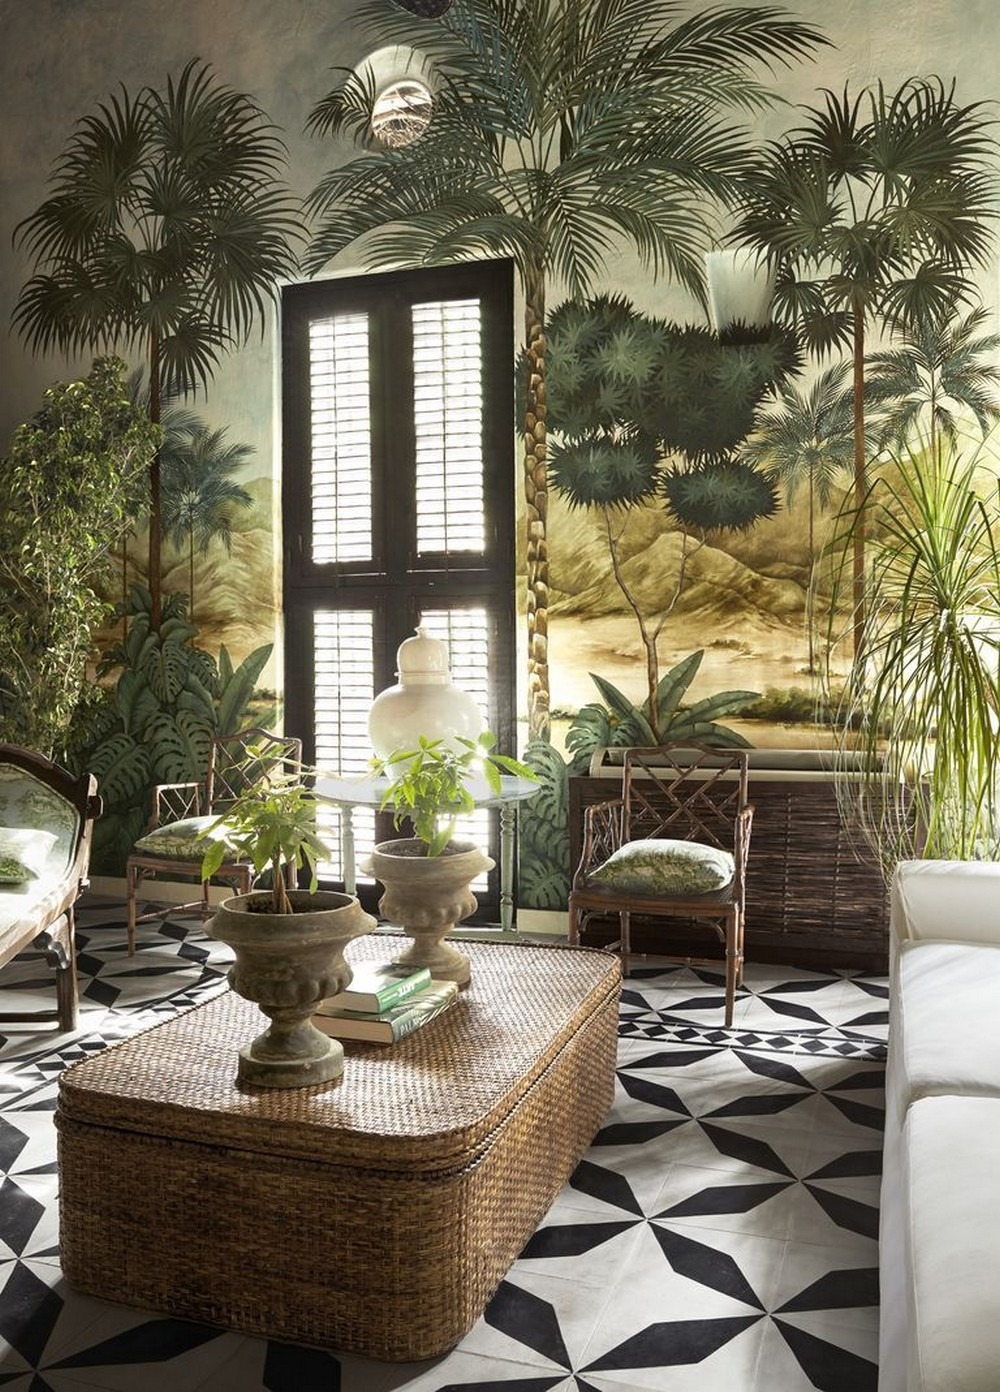 Bohemian Design Add a More Eclectic Touch to Your Home Interiors 2 bohemian design Bohemian Design: Add a More Eclectic Touch to Your Home Interiors Bohemian Design Add a More Eclectic Touch to Your Home Interiors 2